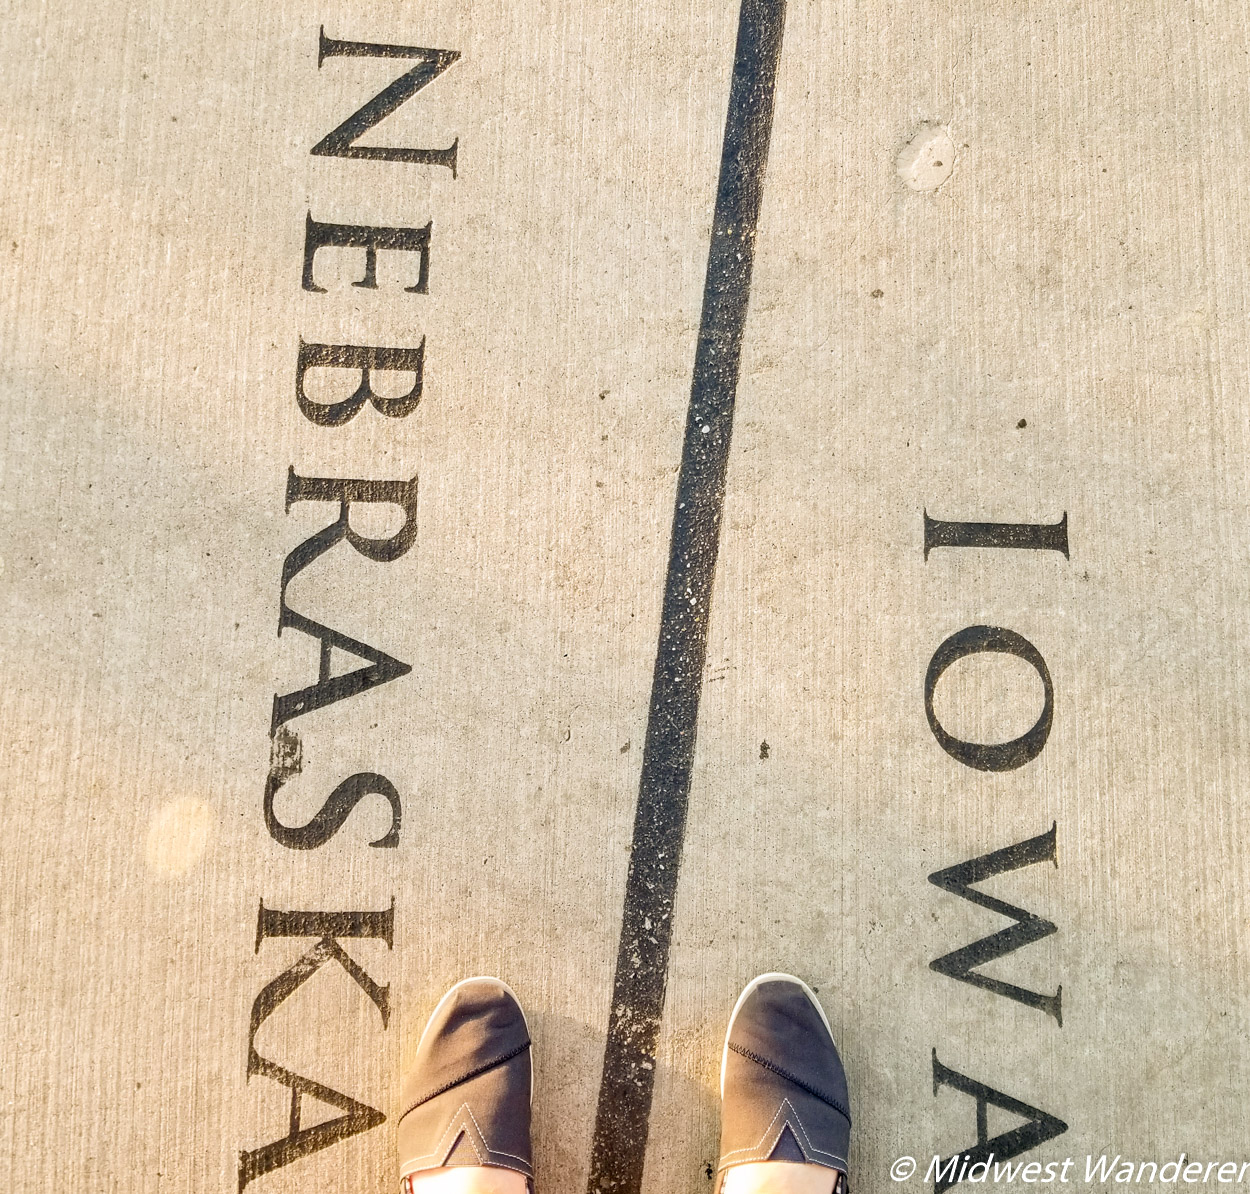 Bob Kerry Pedestrian Bridge - standing in Iowa and Nebraska